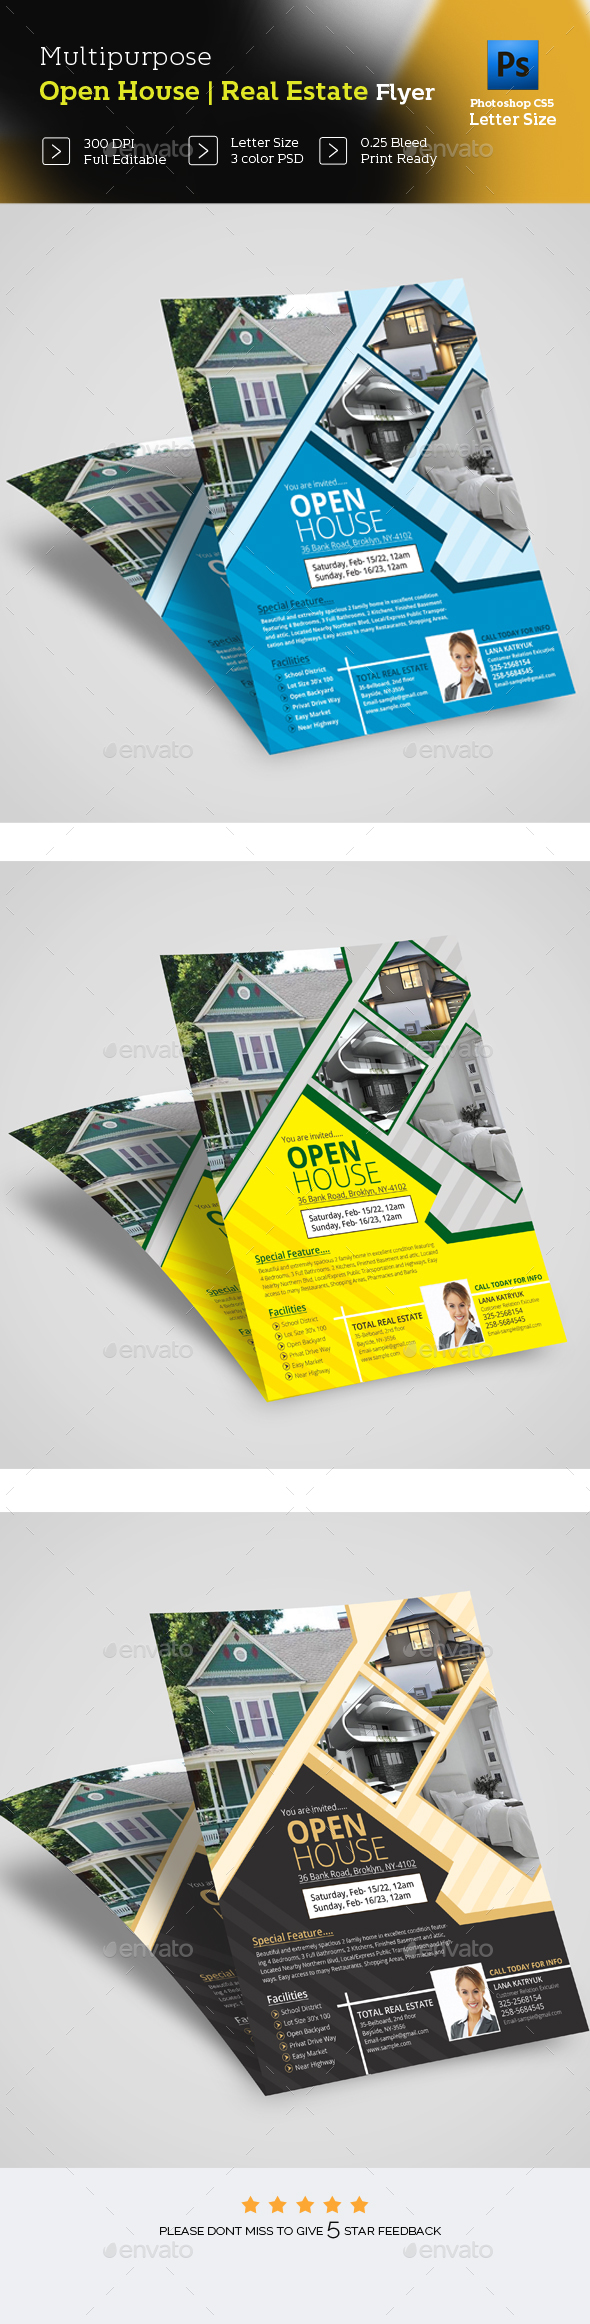 Open House Real Estate Flye - Commerce Flyers